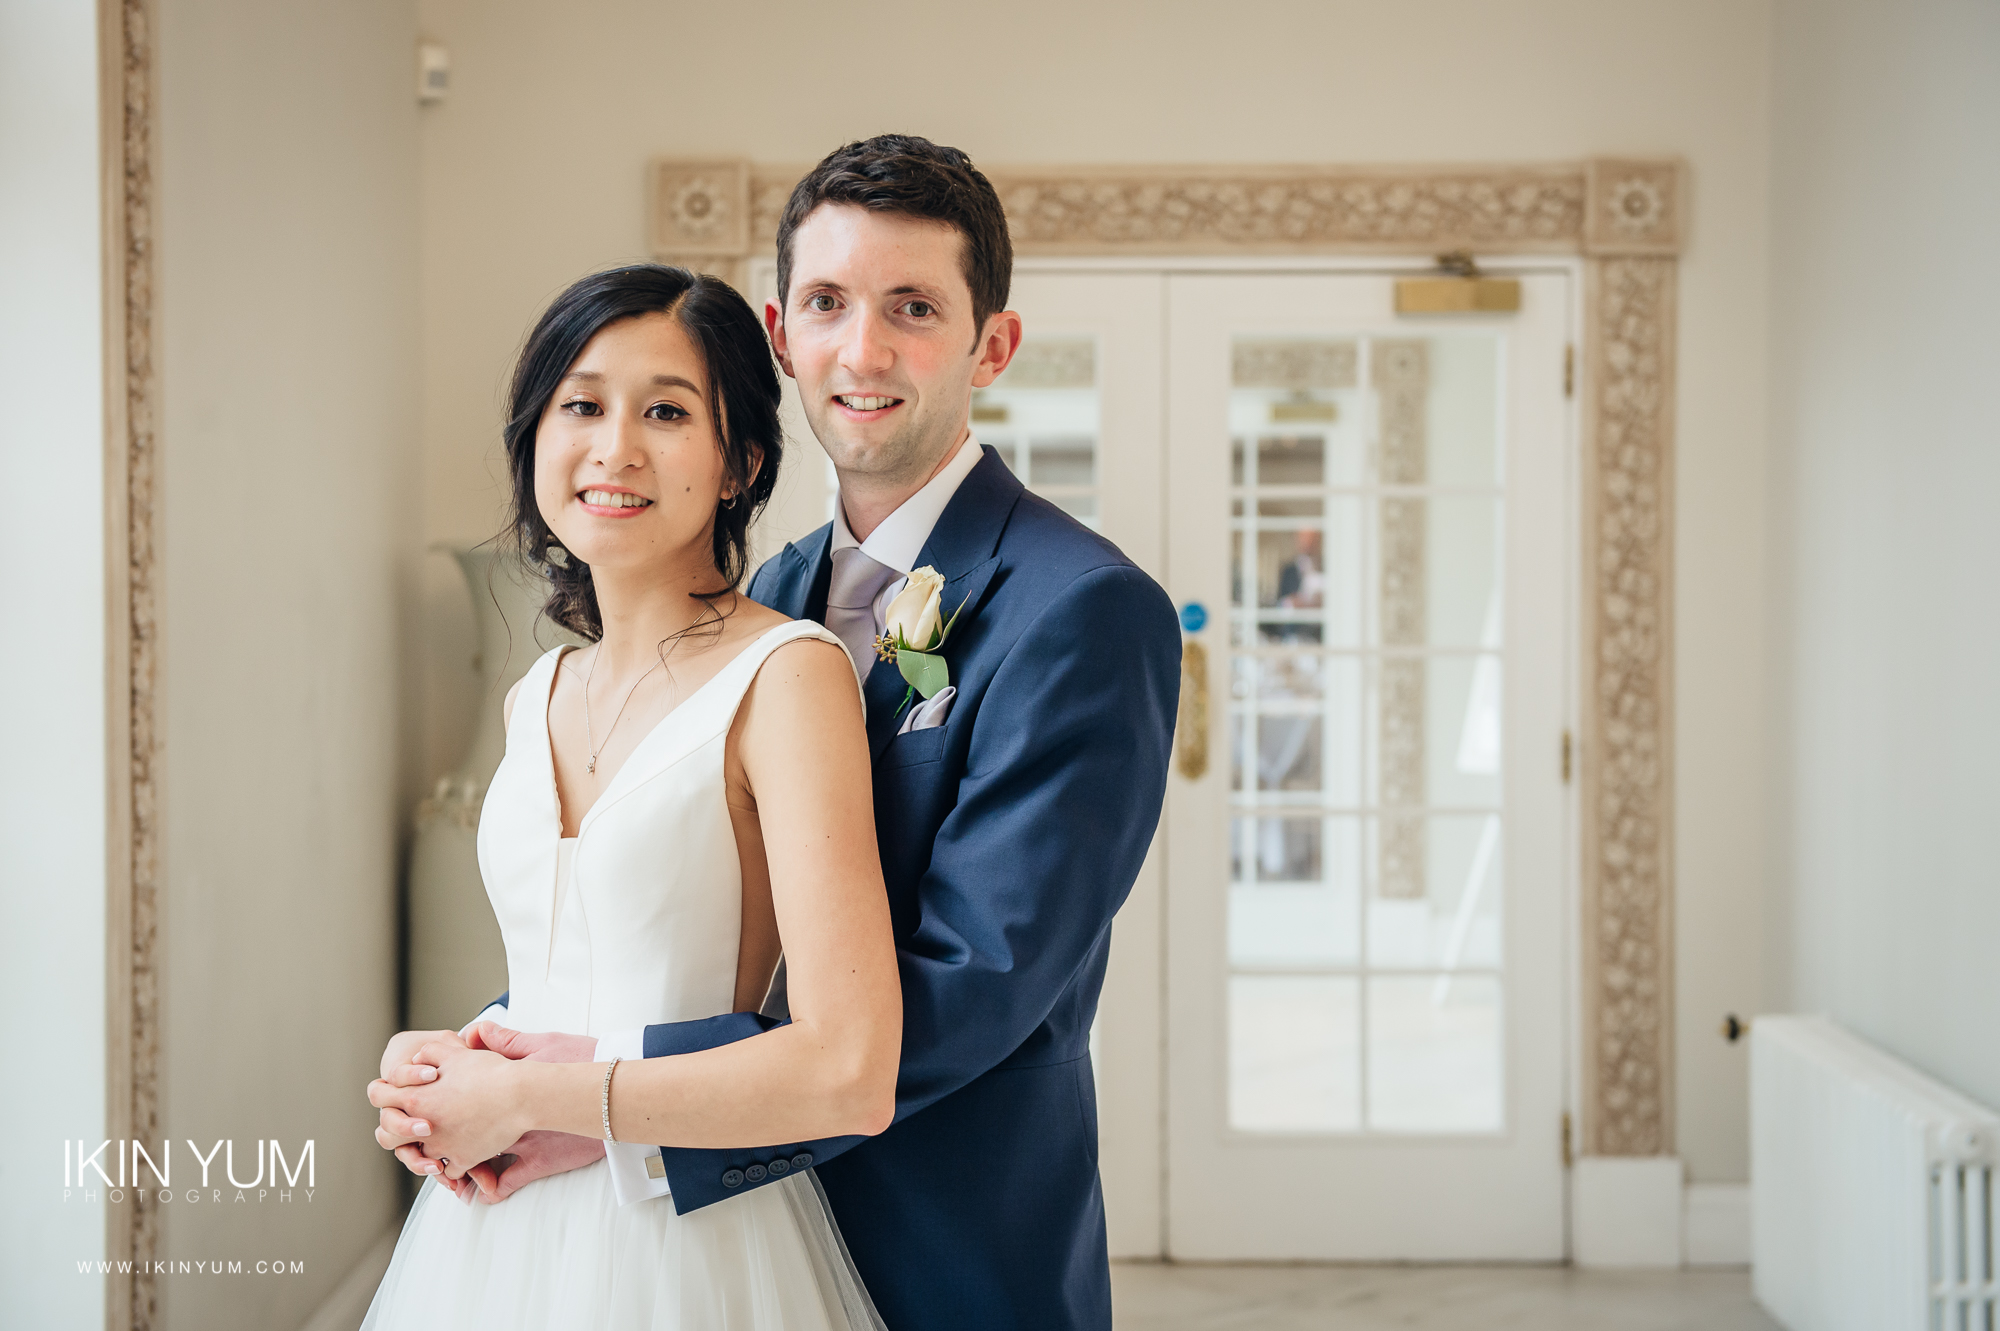 Nicola & Jonny Wedding Day - Ikin Yum Photography-100.jpg